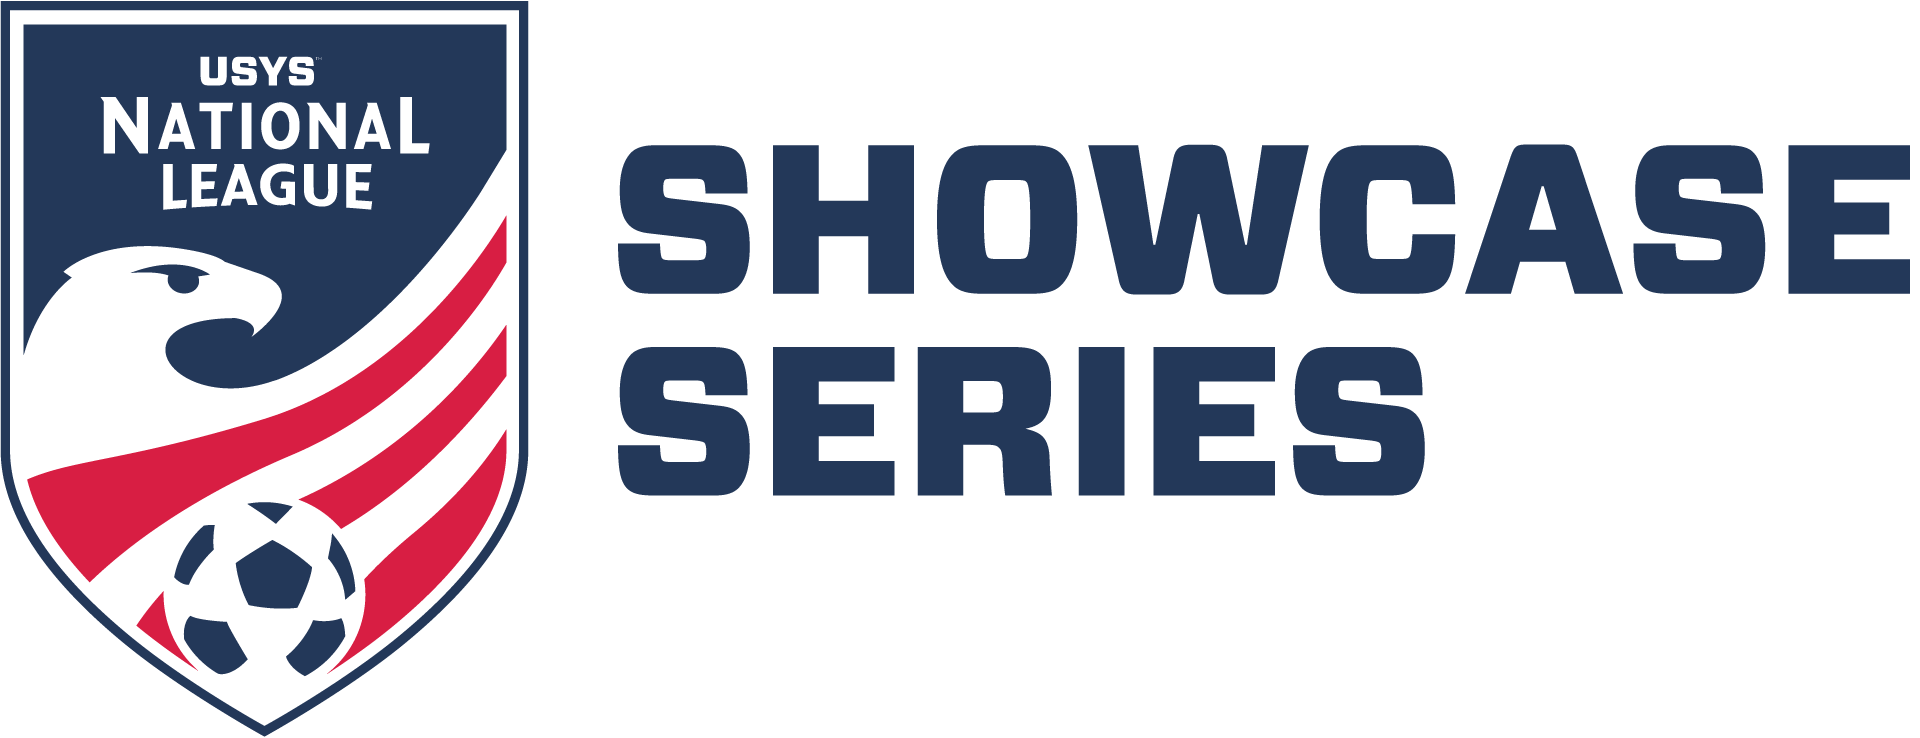 NL-Showcase-Series